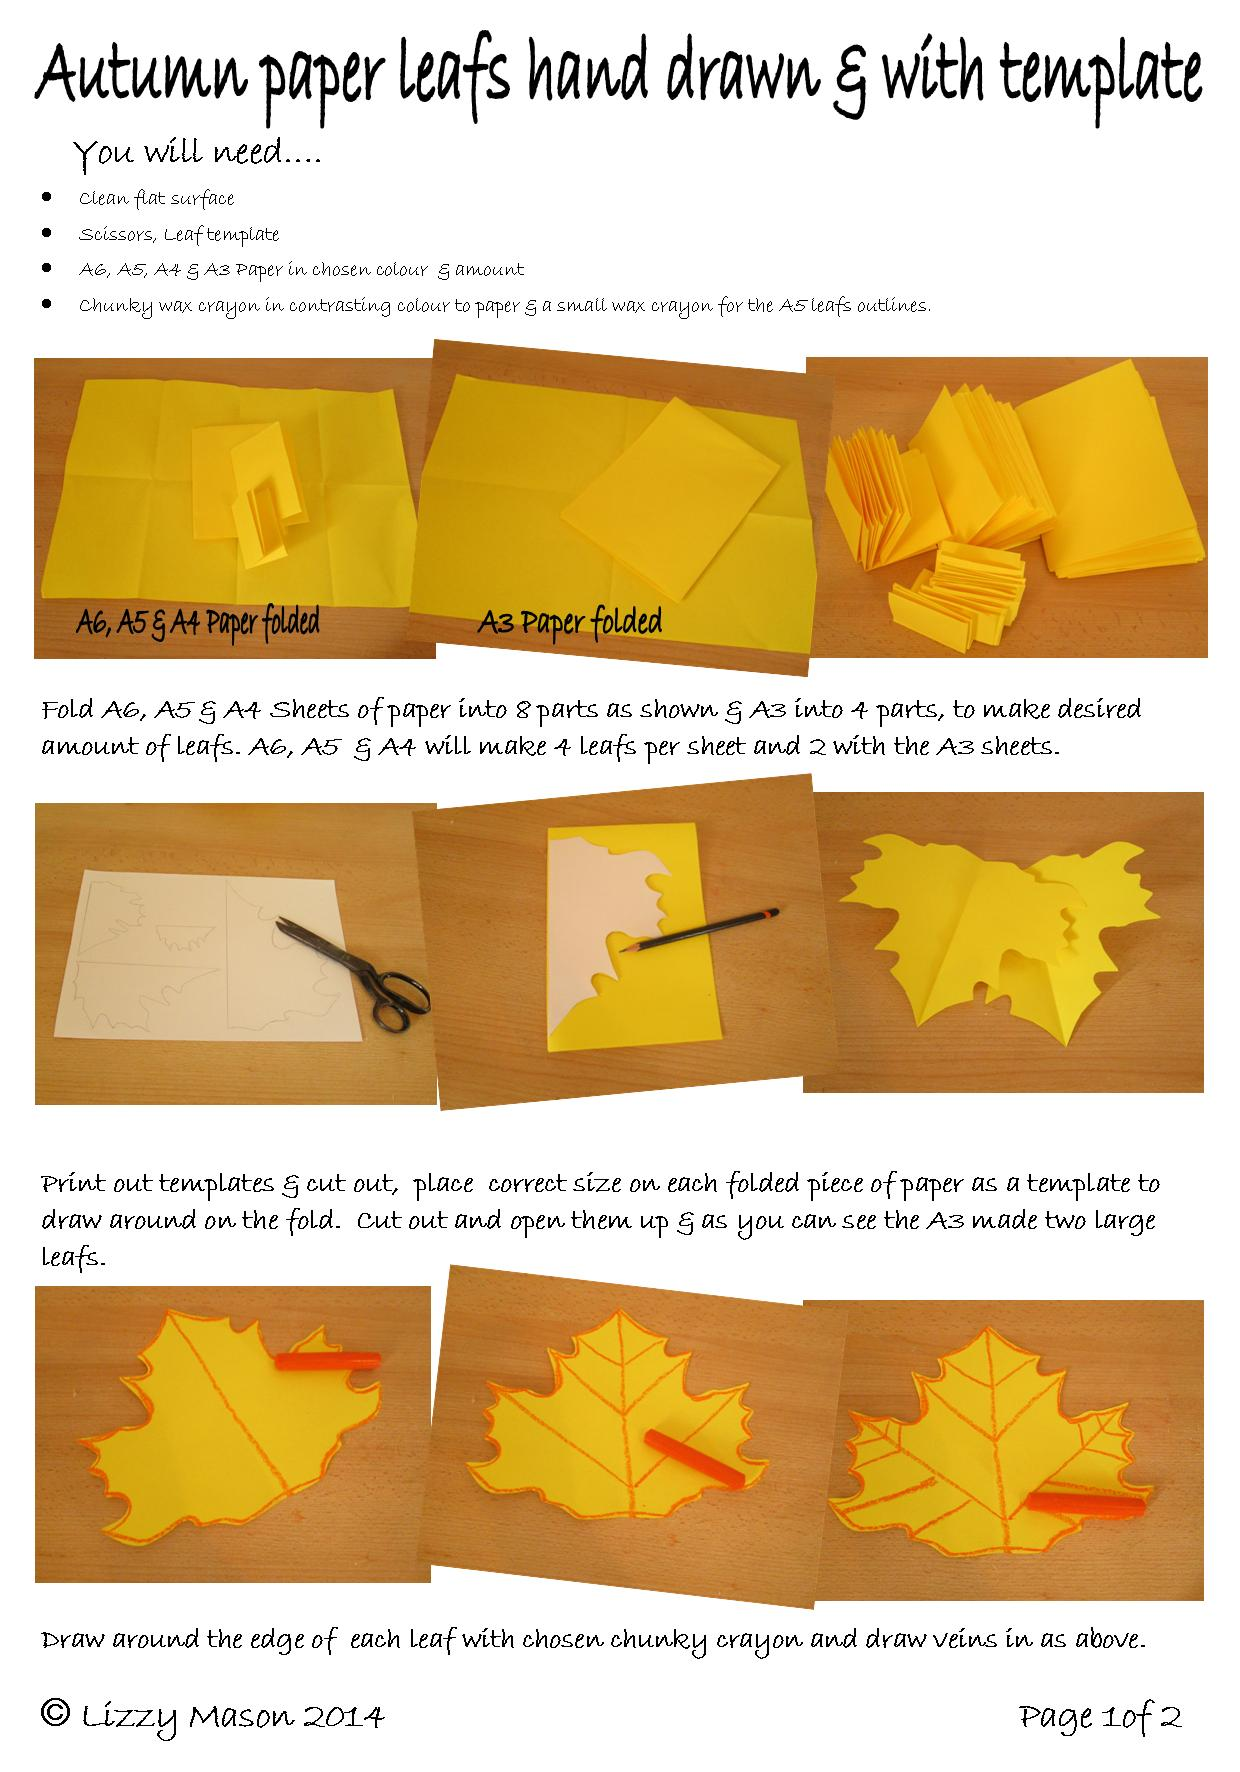 How to make paper autumn leaves with templates & wax crayons